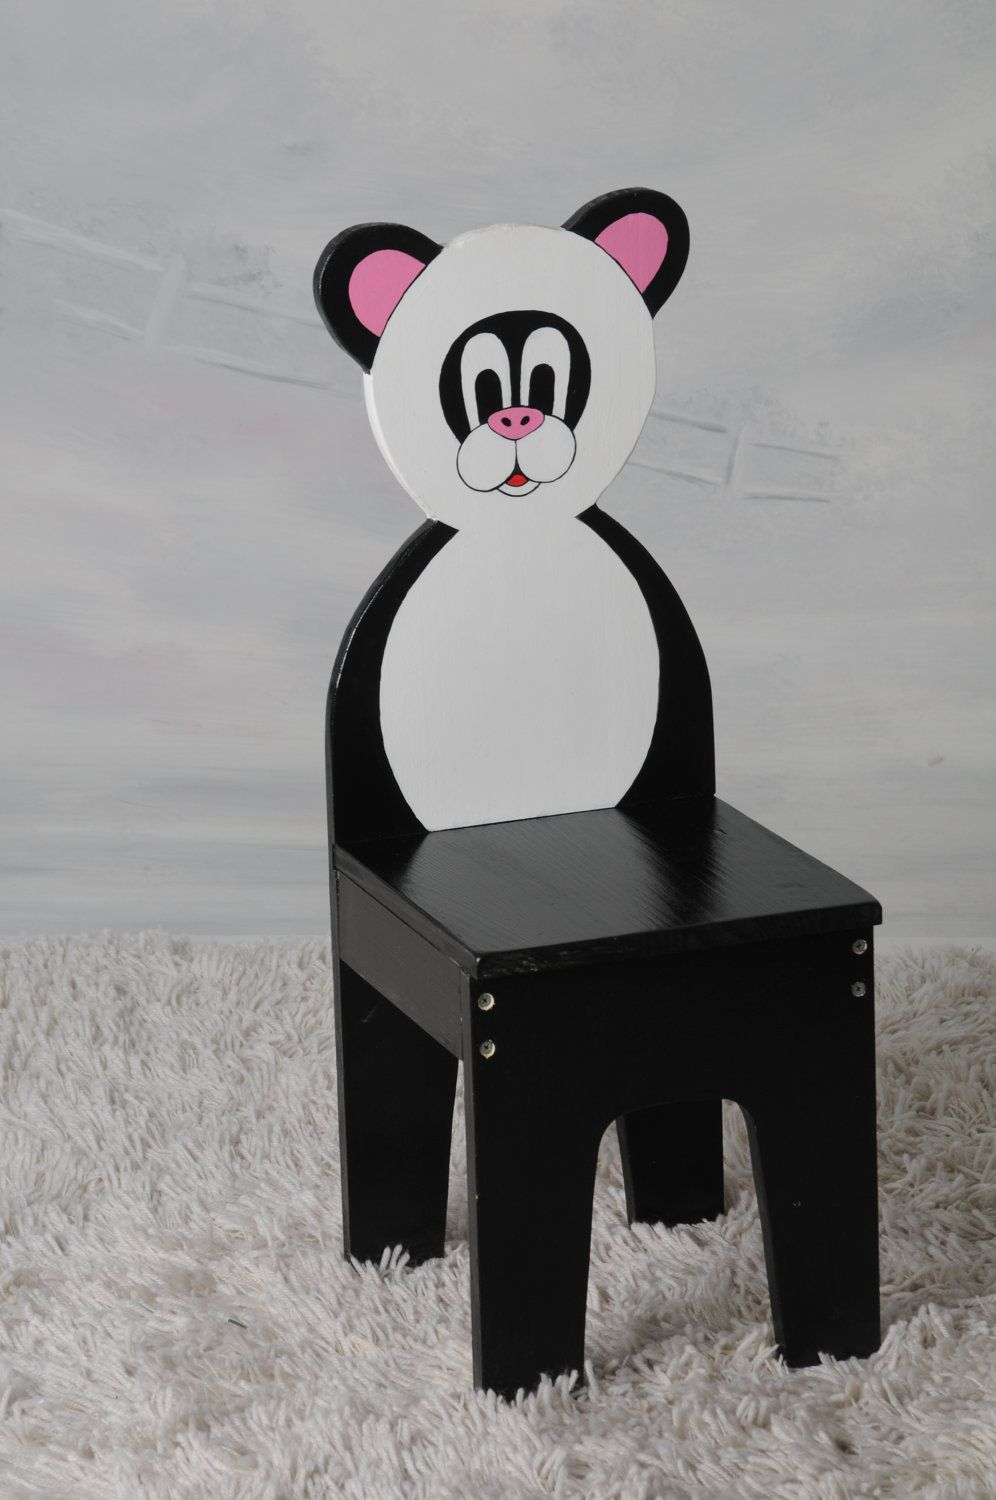 Enjoyable Ichart Kids Panda Chair Childrens Furniture By Ichart On Gmtry Best Dining Table And Chair Ideas Images Gmtryco